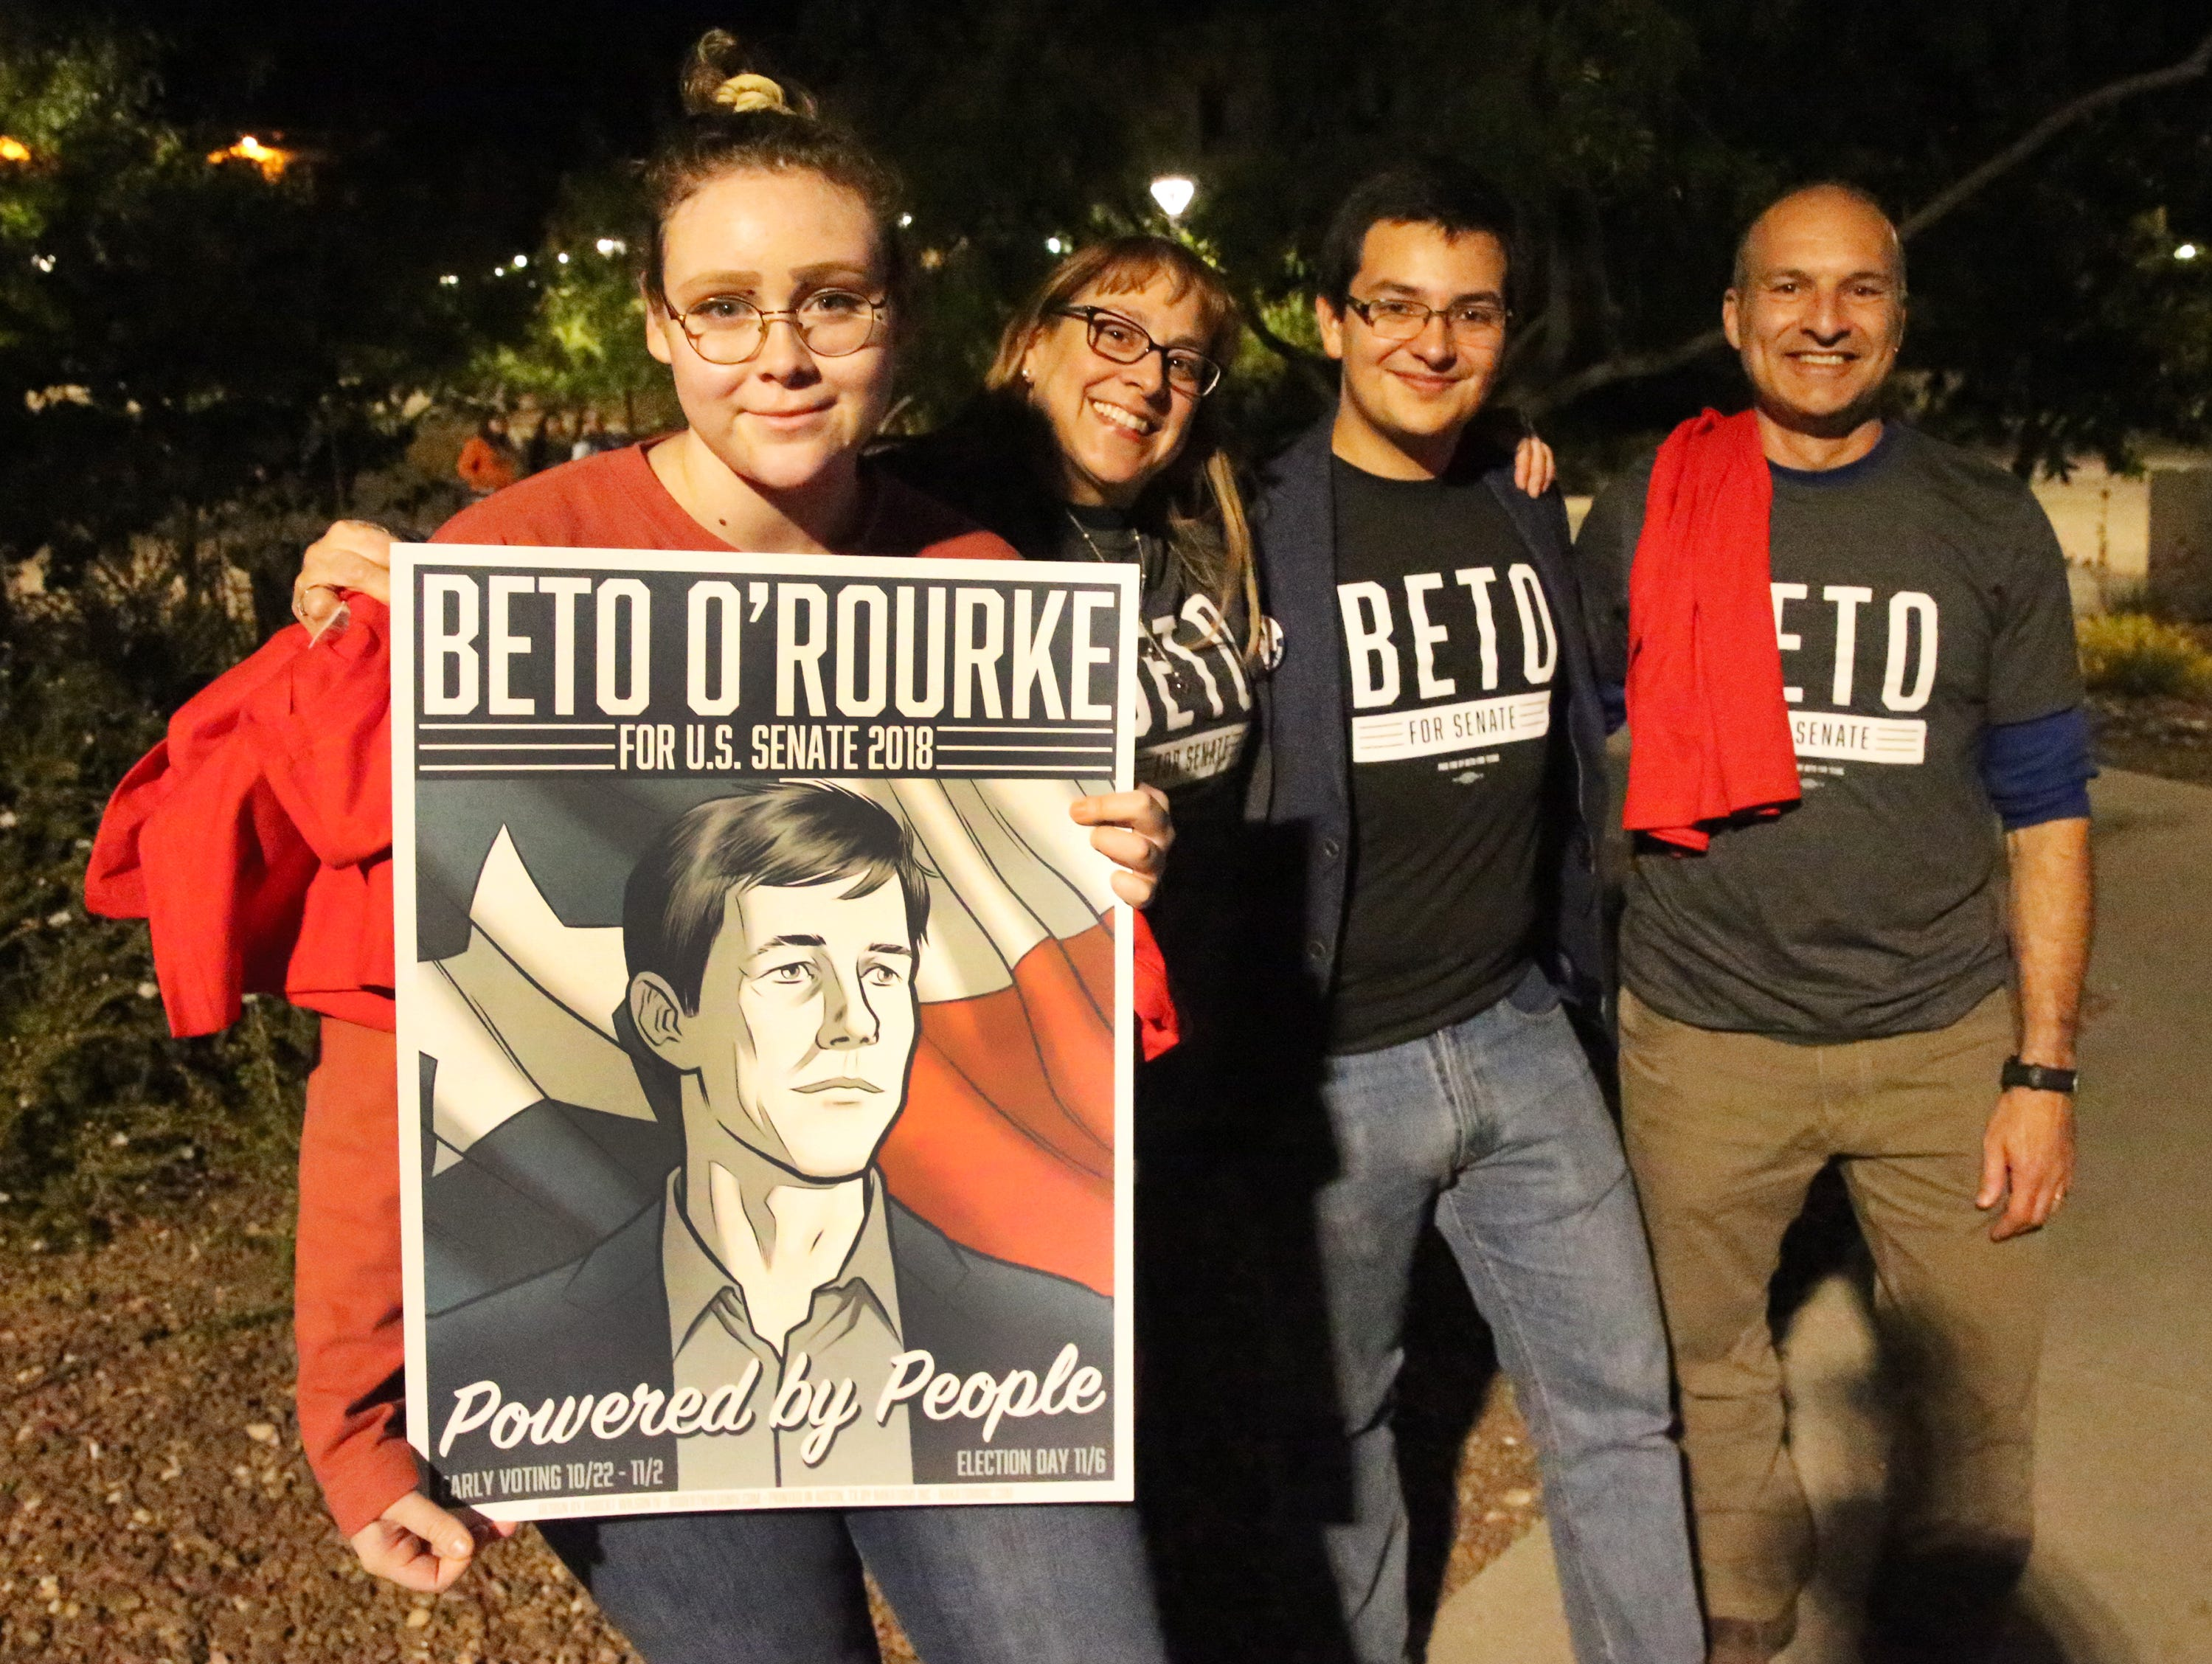 Supporters of Democratic U.S. Senate candidate Beto O'Rourke outside Magoffiin Auditorium were he want to speak Monday night. They are from left: Danelle Kutz, Sondie Skory, Armand Avila and John Skory.